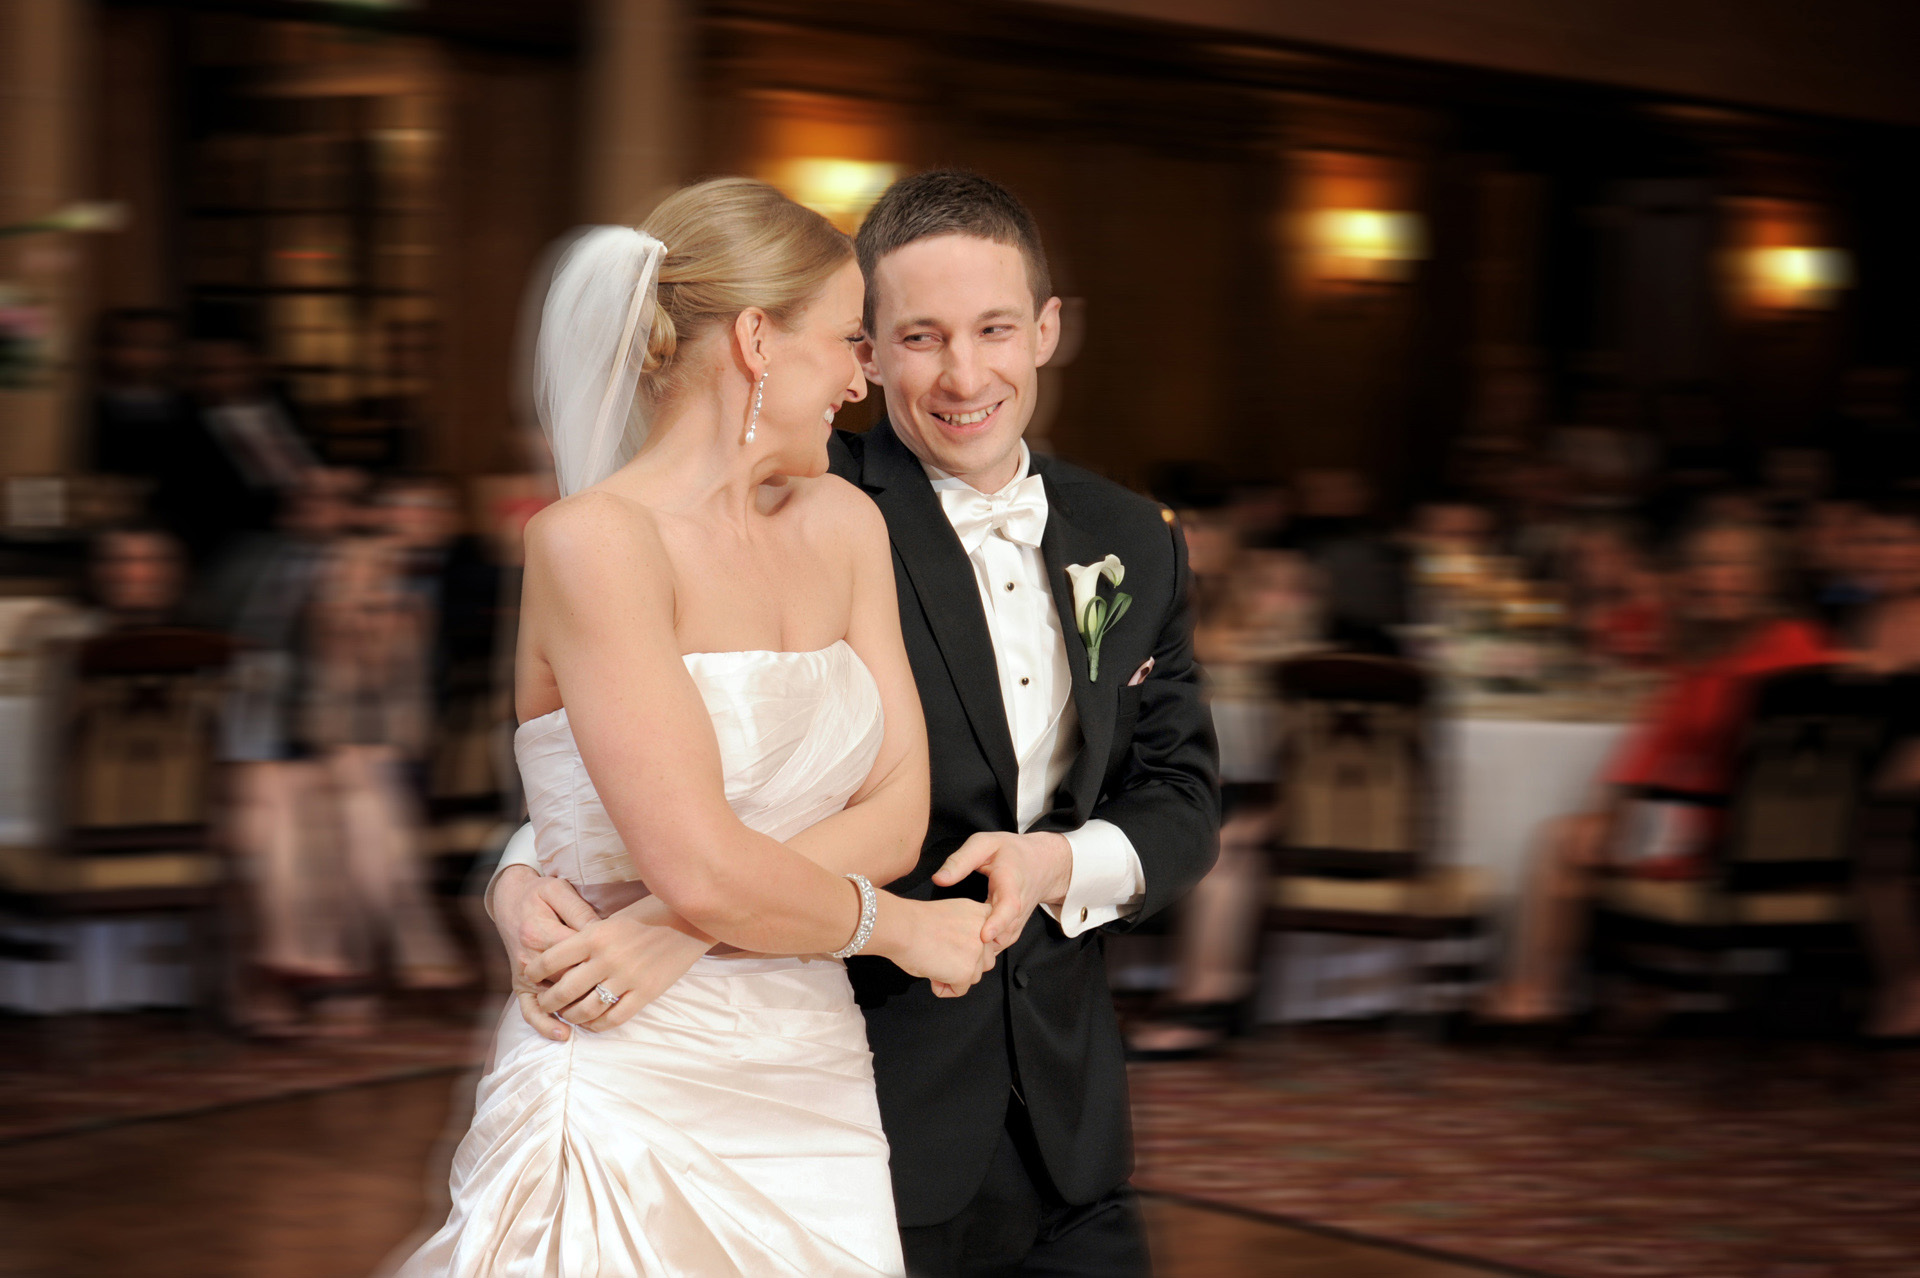 A windy winter wedding in Michigan features the bride and groom enjoying a spin on the dance floor at the Detroit Athletic Club.